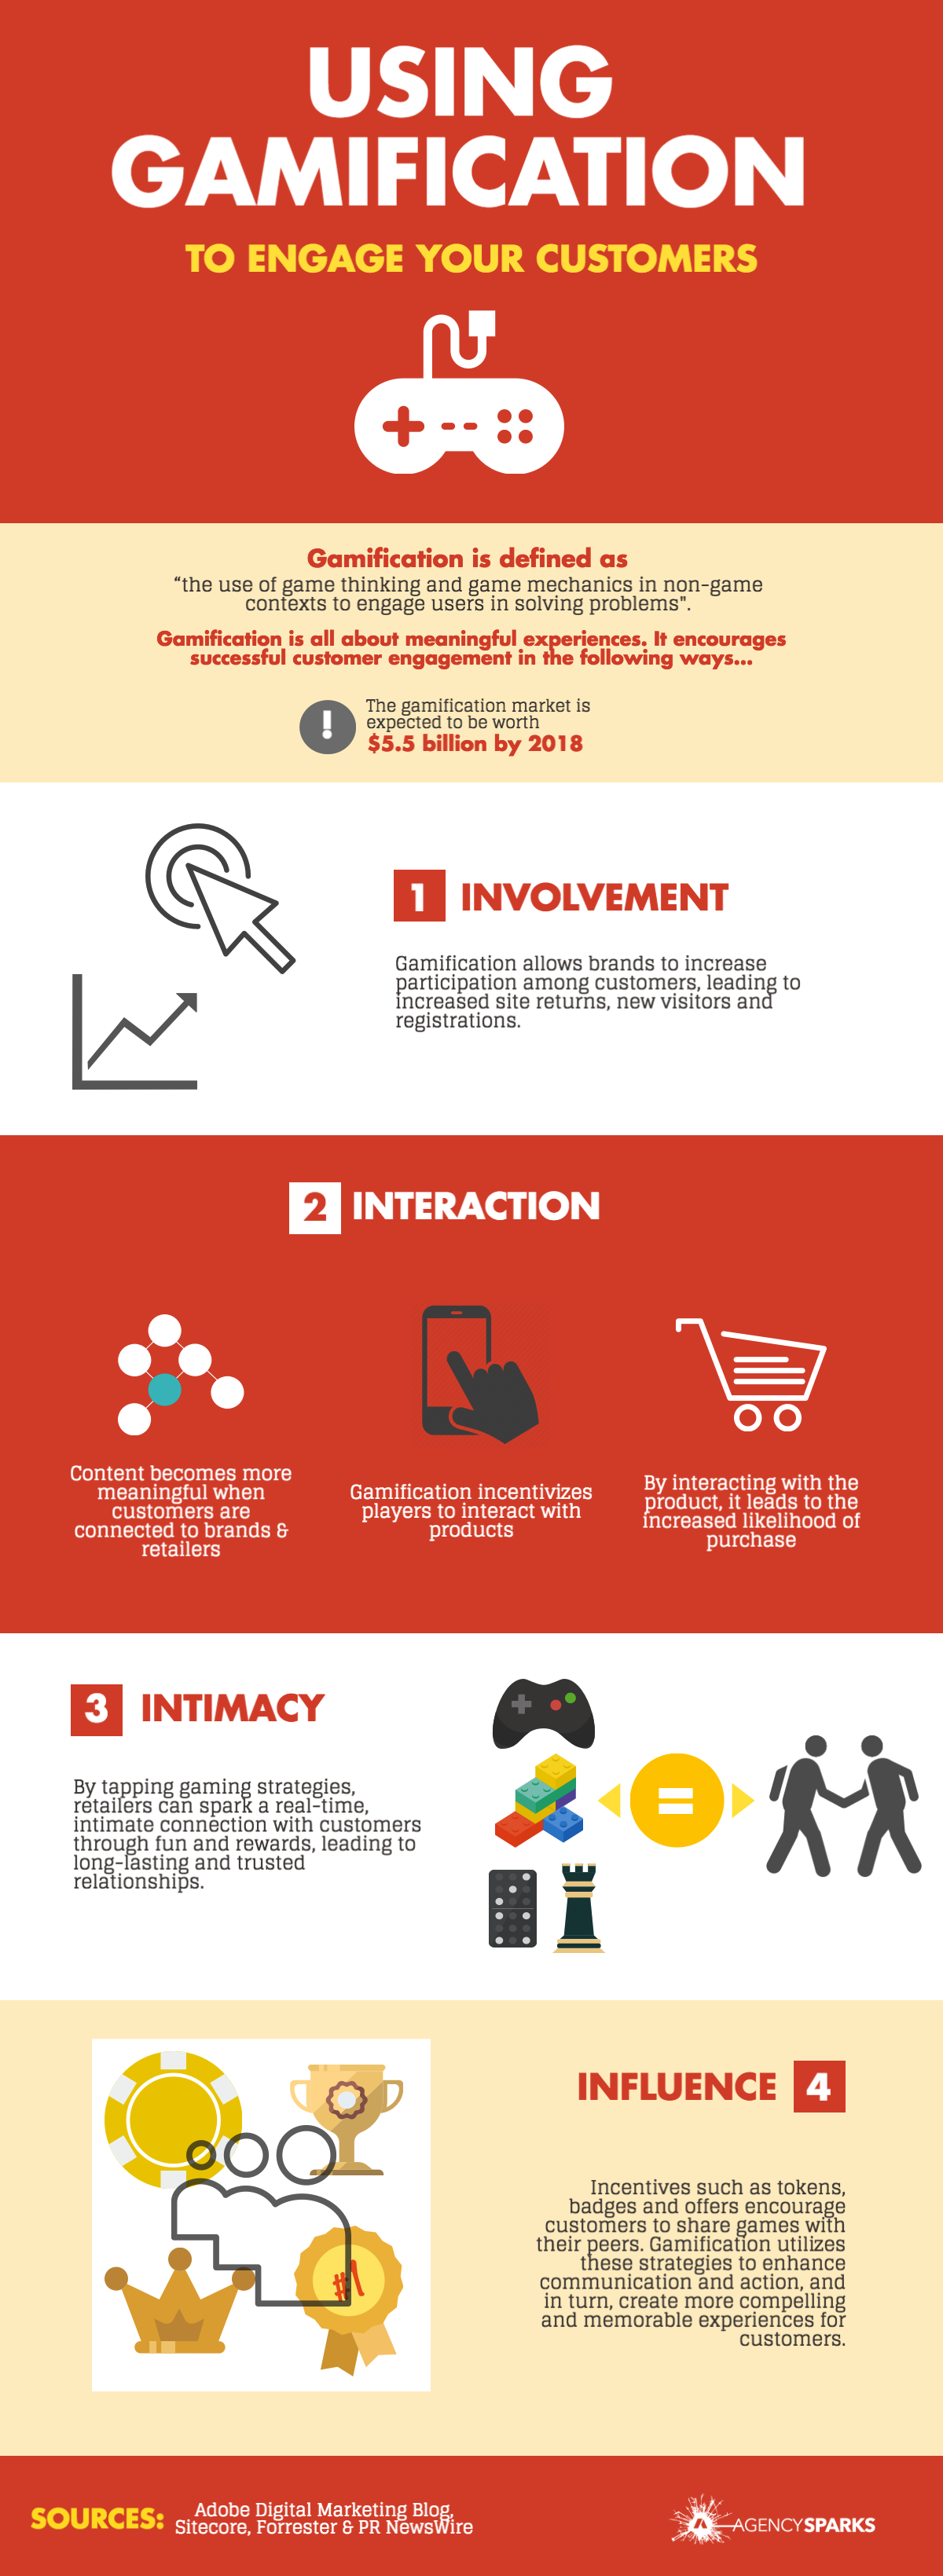 How to gamify your marketing experience.  Gamification in marketing provides an engaging experience for consumers. Increasing the interaction and involvement of the consumer with the brand leads to brand loyalty and influence.